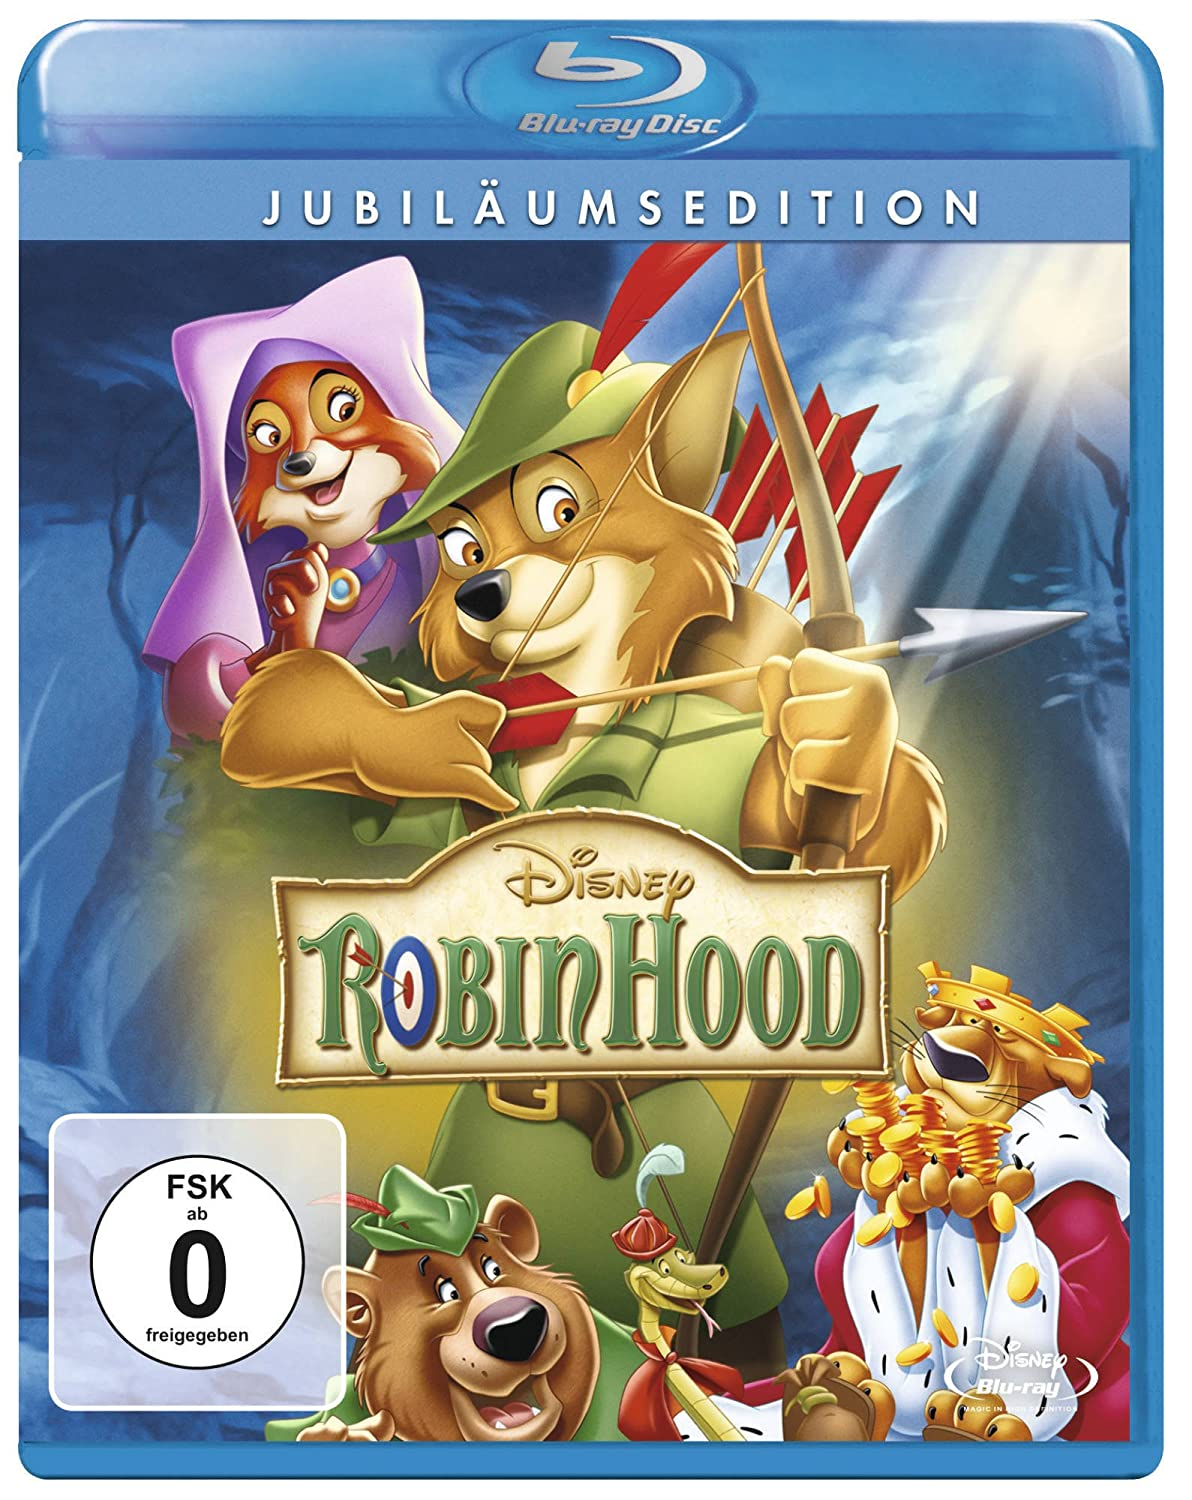 Robin Hood (Jubiläumsedition) [Blu-ray]: Amazon.de: DVD & Blu-ray